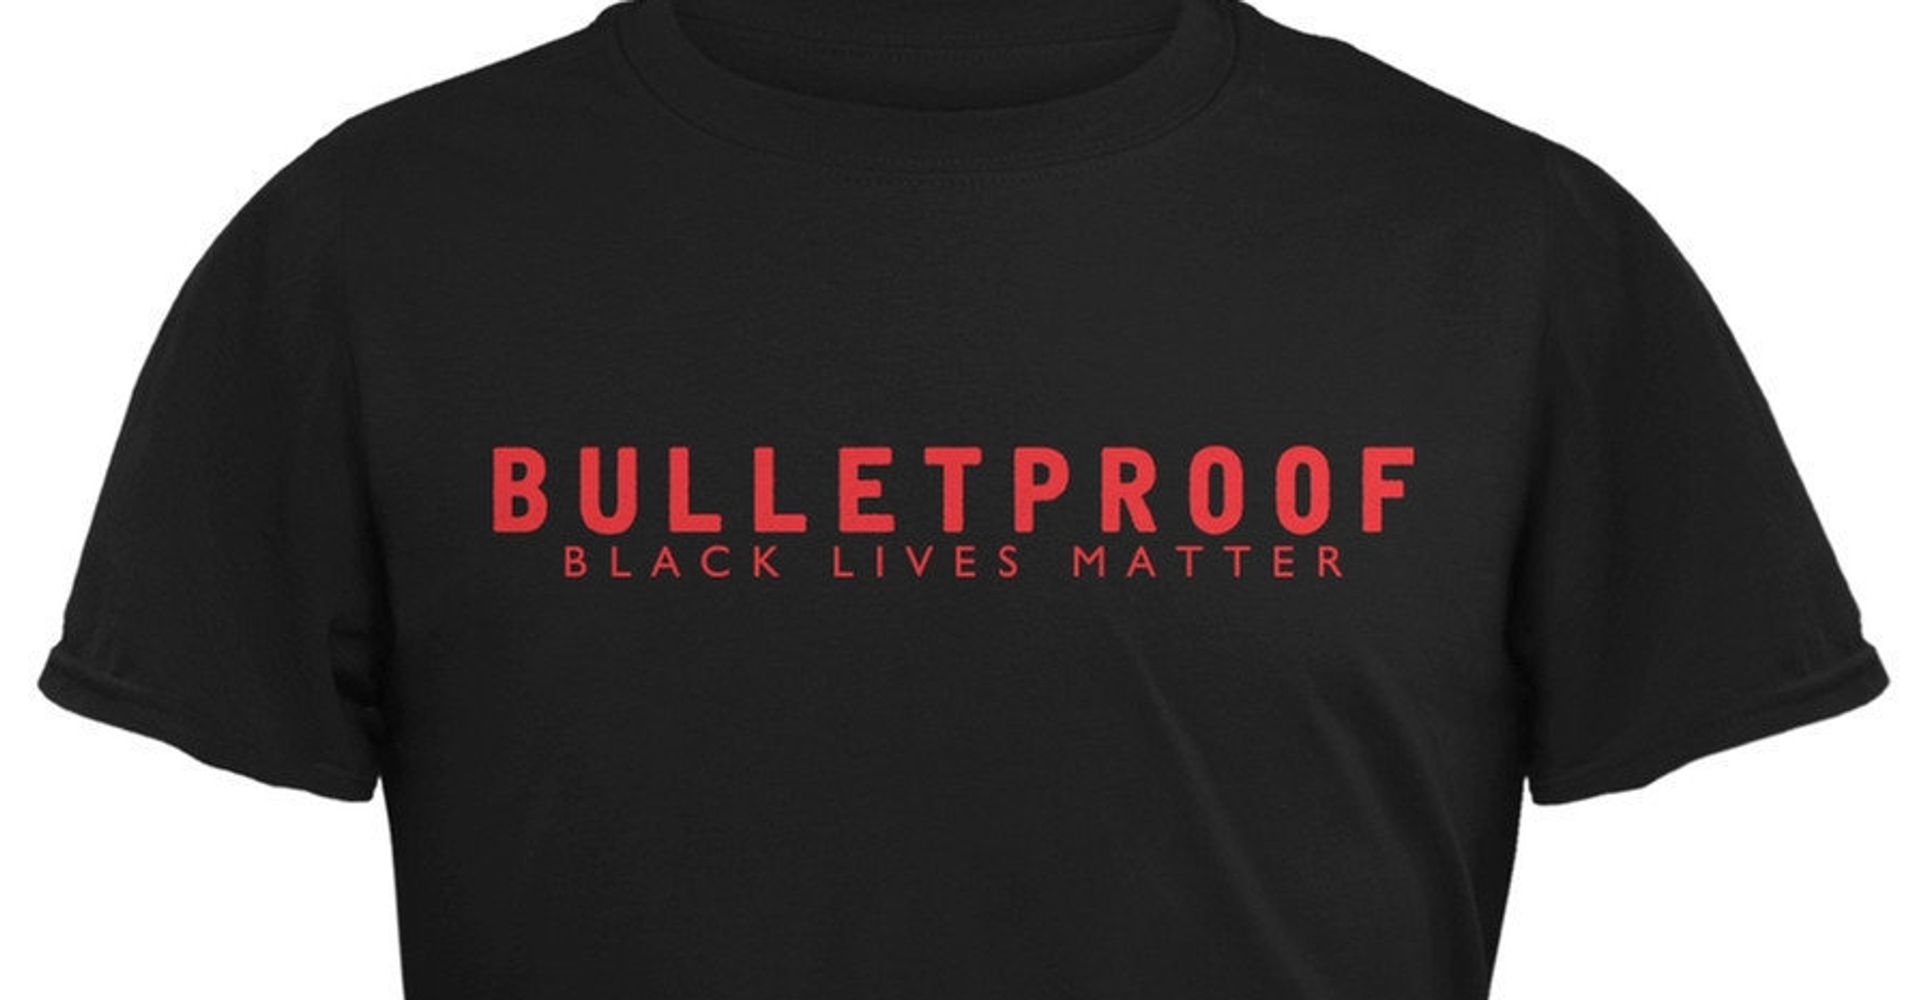 Design your own t shirt lesson plan - Walmart Ditches Bulletproof Black Lives Matter T Shirt After Police Protest Huffpost